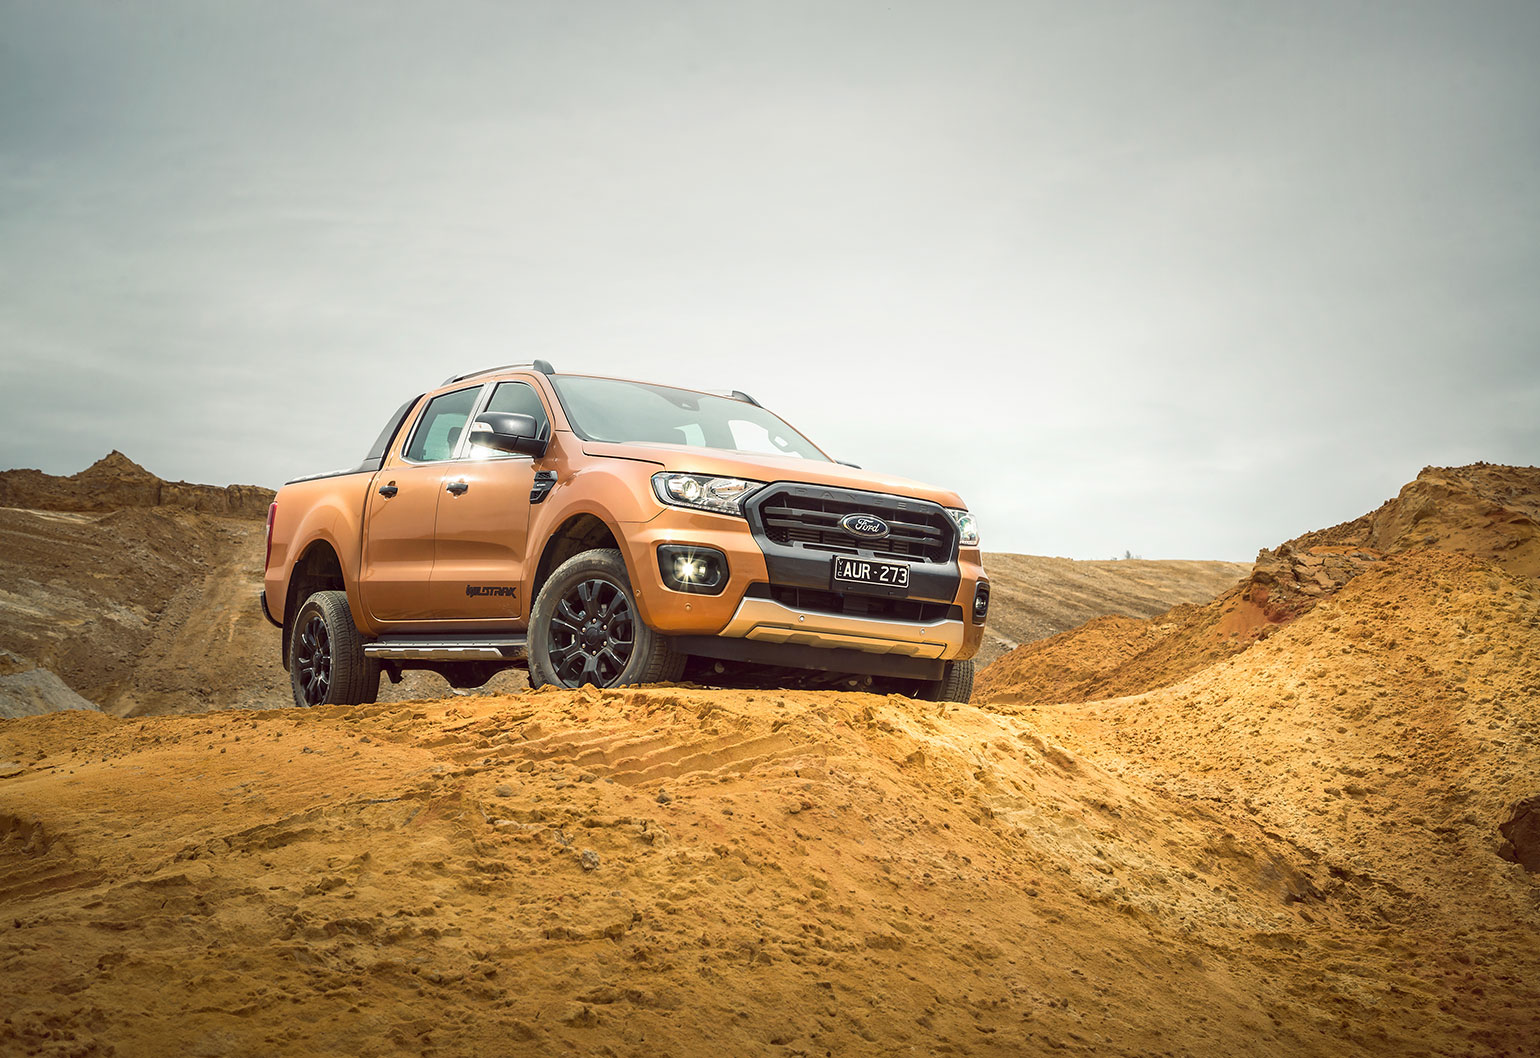 The Ford Ranger